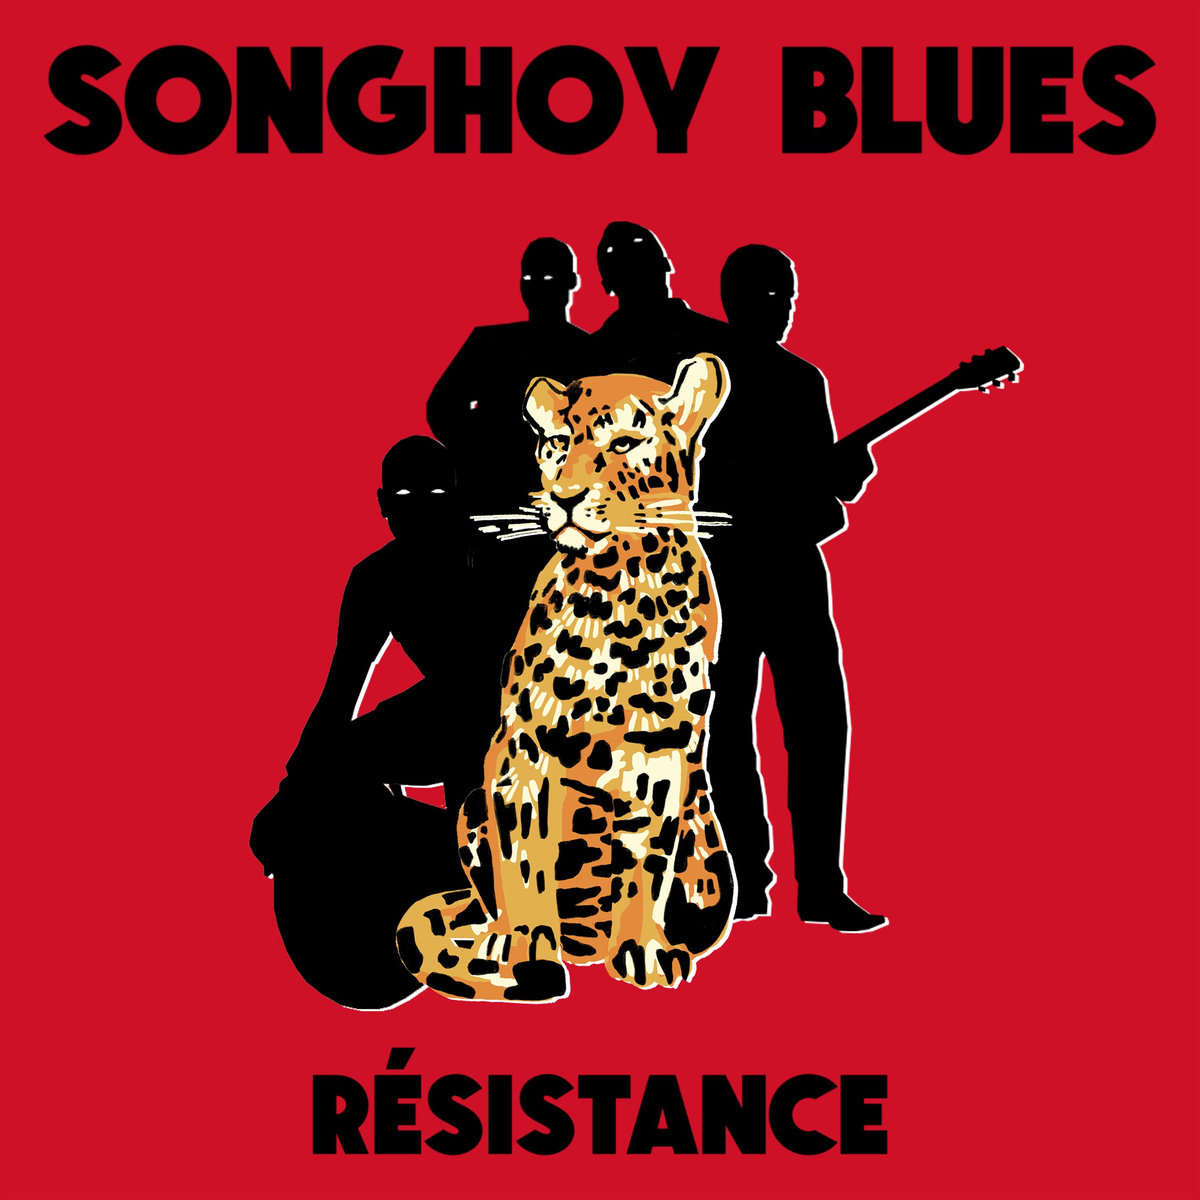 SONGHOY BLUES   Resistance, 2017, Self-Produced, 44:00